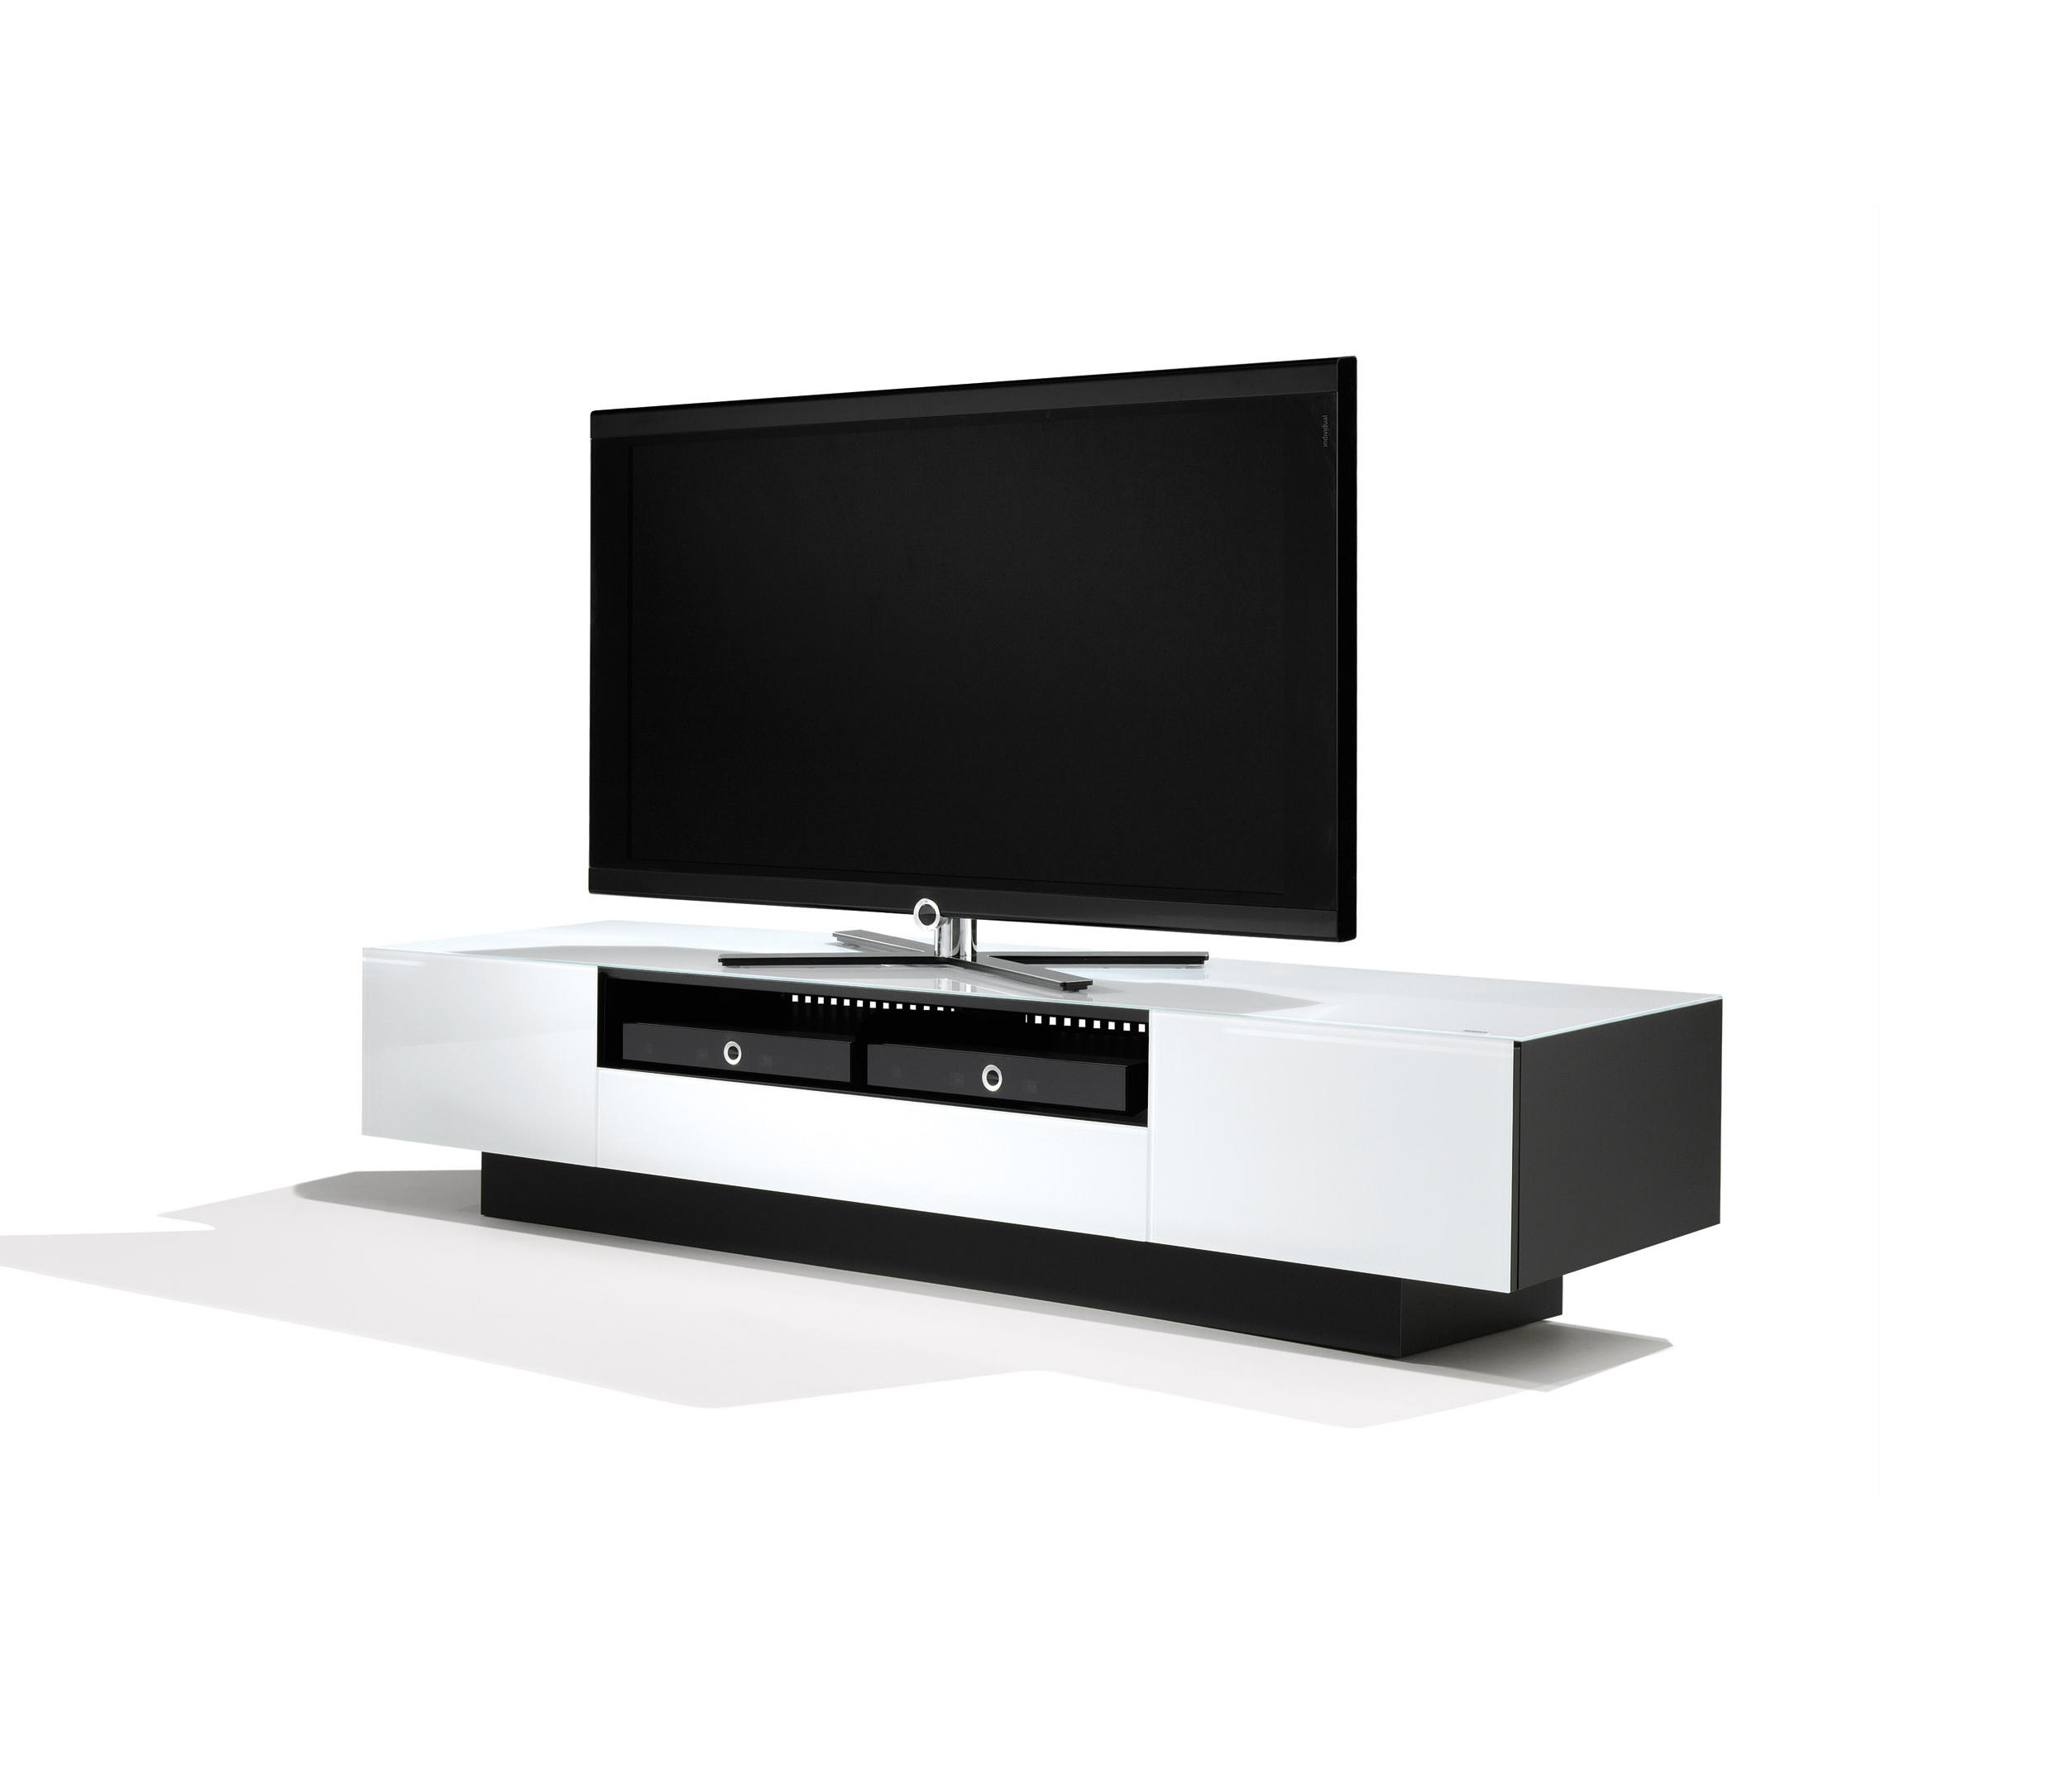 Tv Rack Jahnke Finest Frank Olsen Gloss White Tv Cabinet White  # Meuble Tv Jahnke